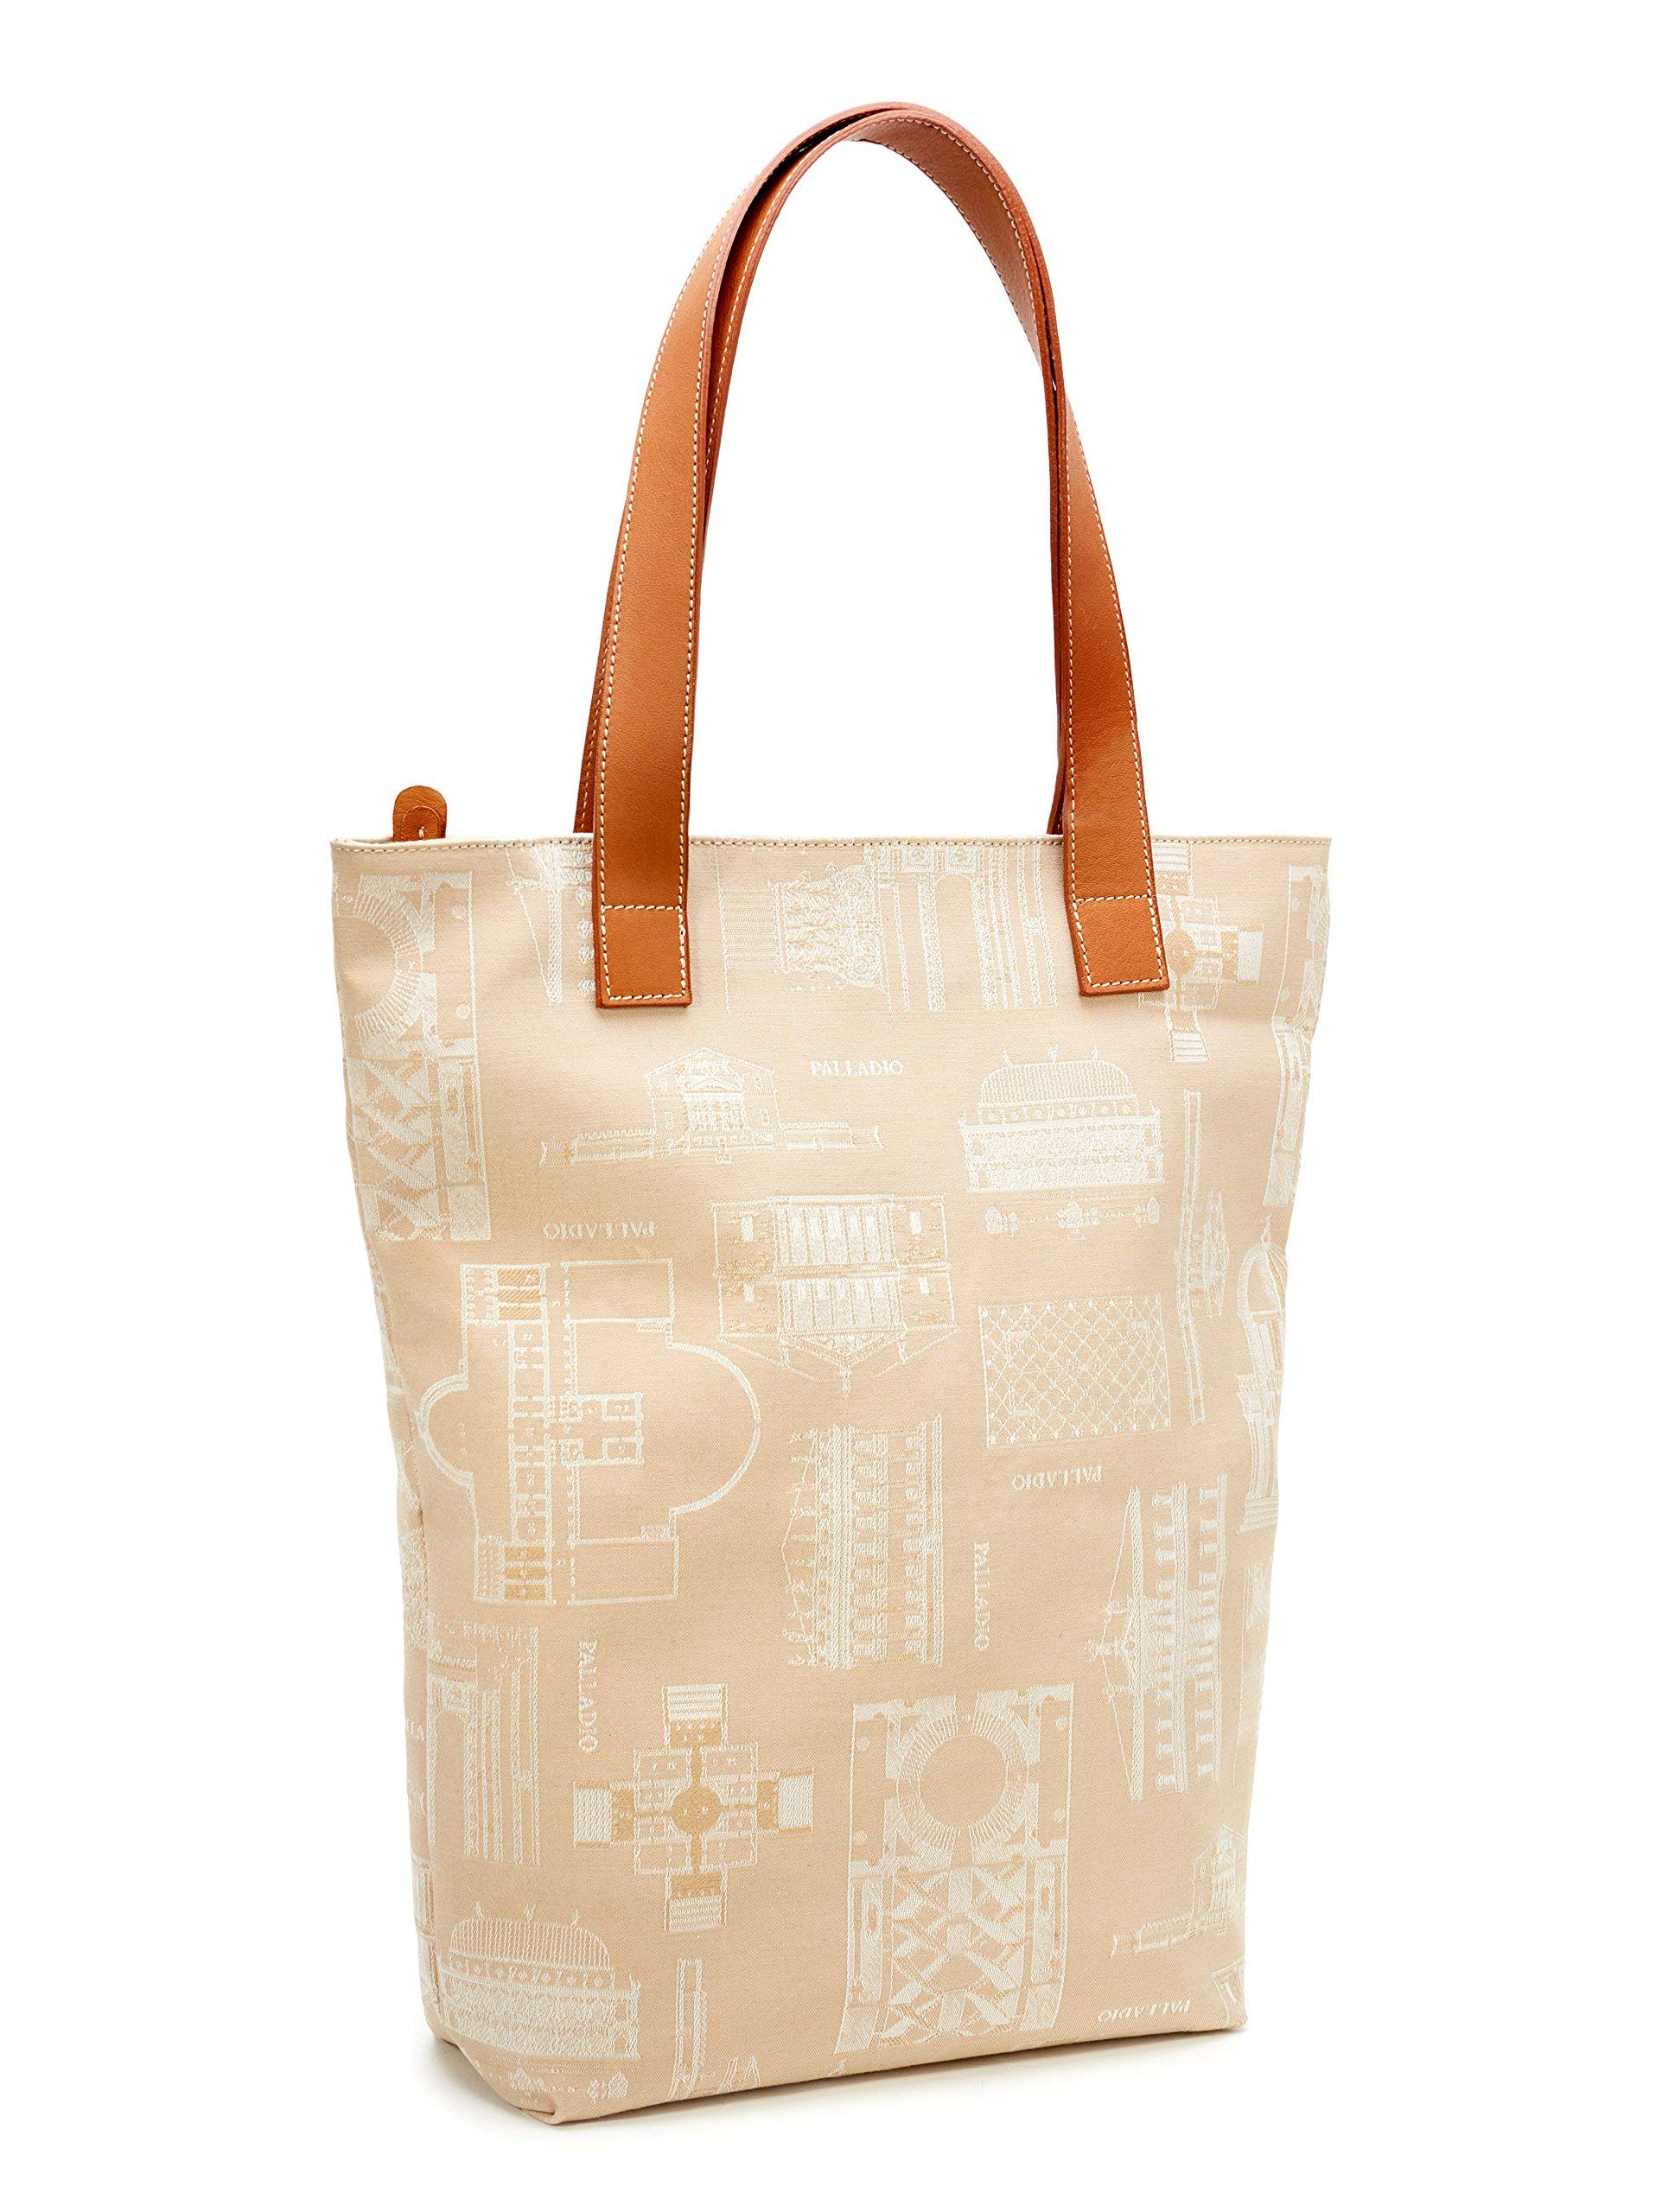 PalladioBags, Women's bag Villa Forni-Cerato, shoulderbag in fabric and leather, shopper bag with designs by Palladio. Entirely handmade in Italy - handmade-bags